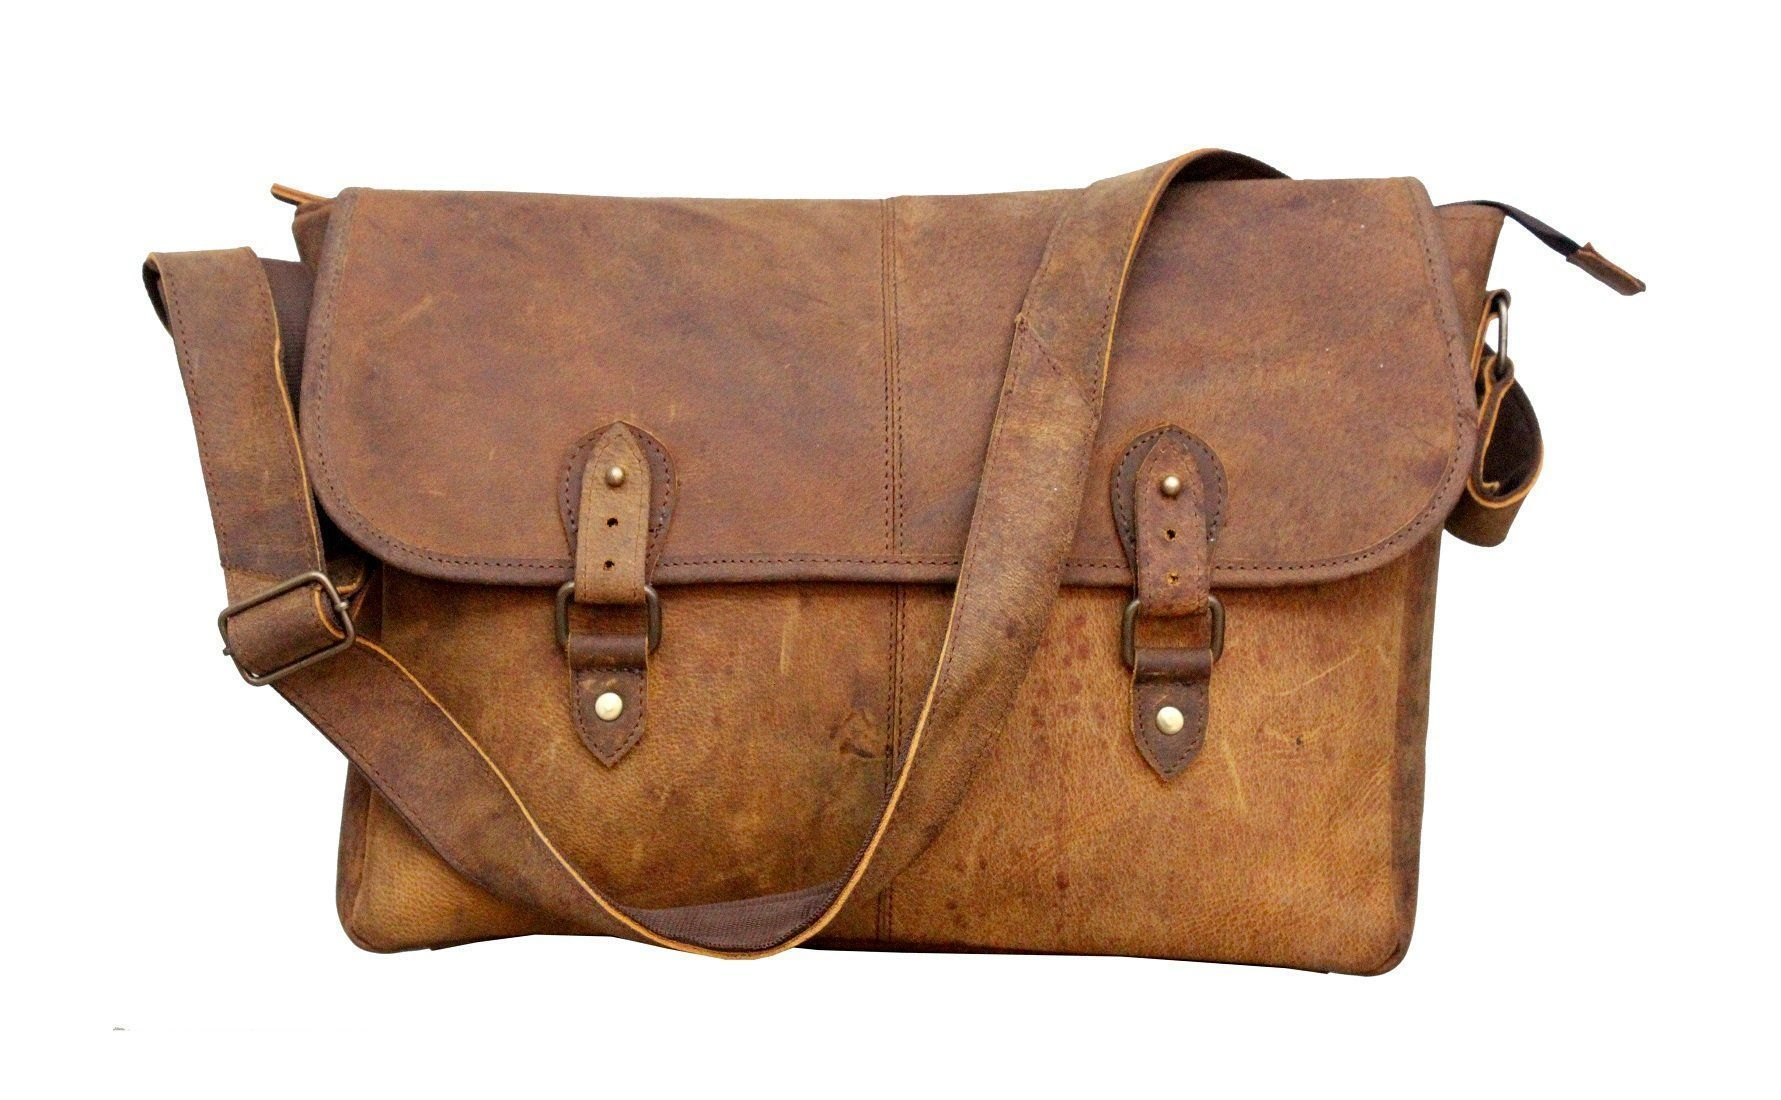 Leather - IN-INDIA Real Buffalo Leather Regular Use Stylish Hunter Messenger Bag -Fits Laptop Upto 15.6 Inches